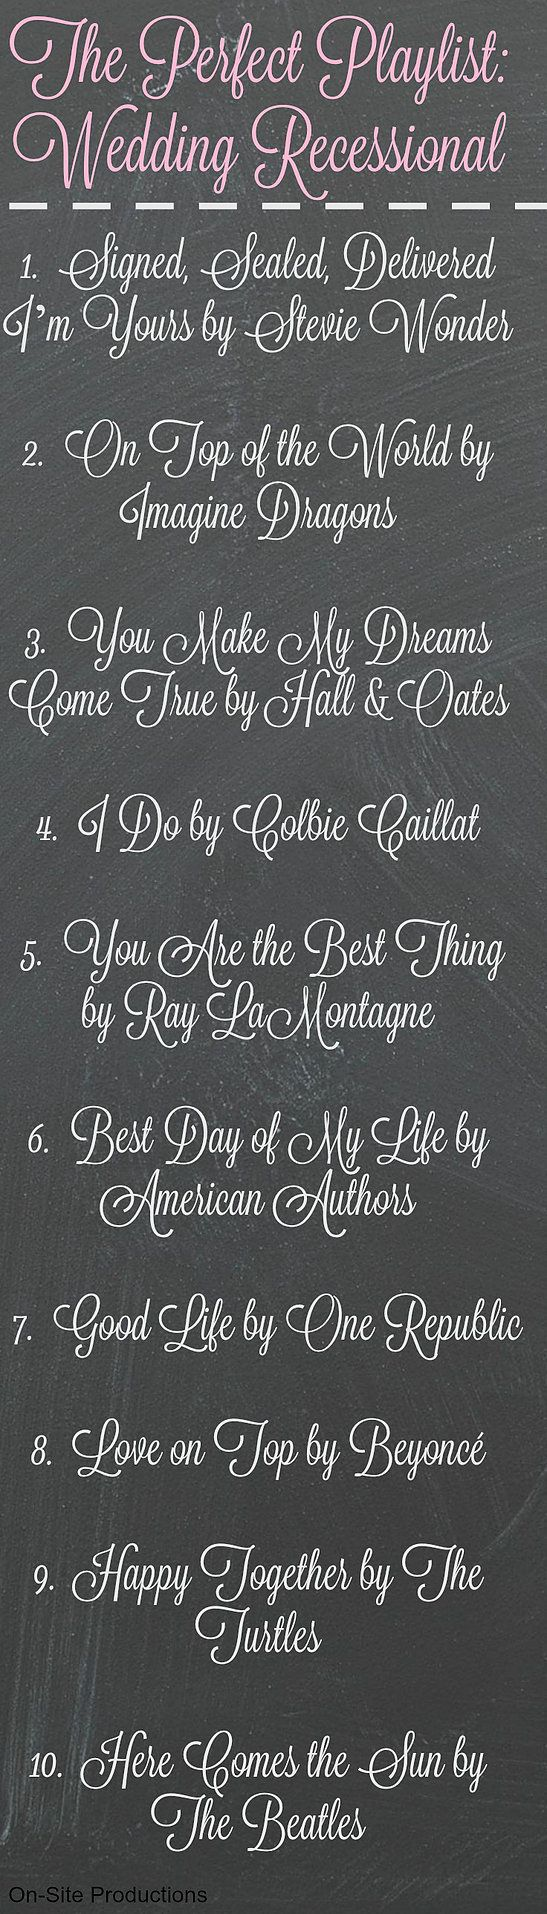 Ten Wedding Recessional Songs